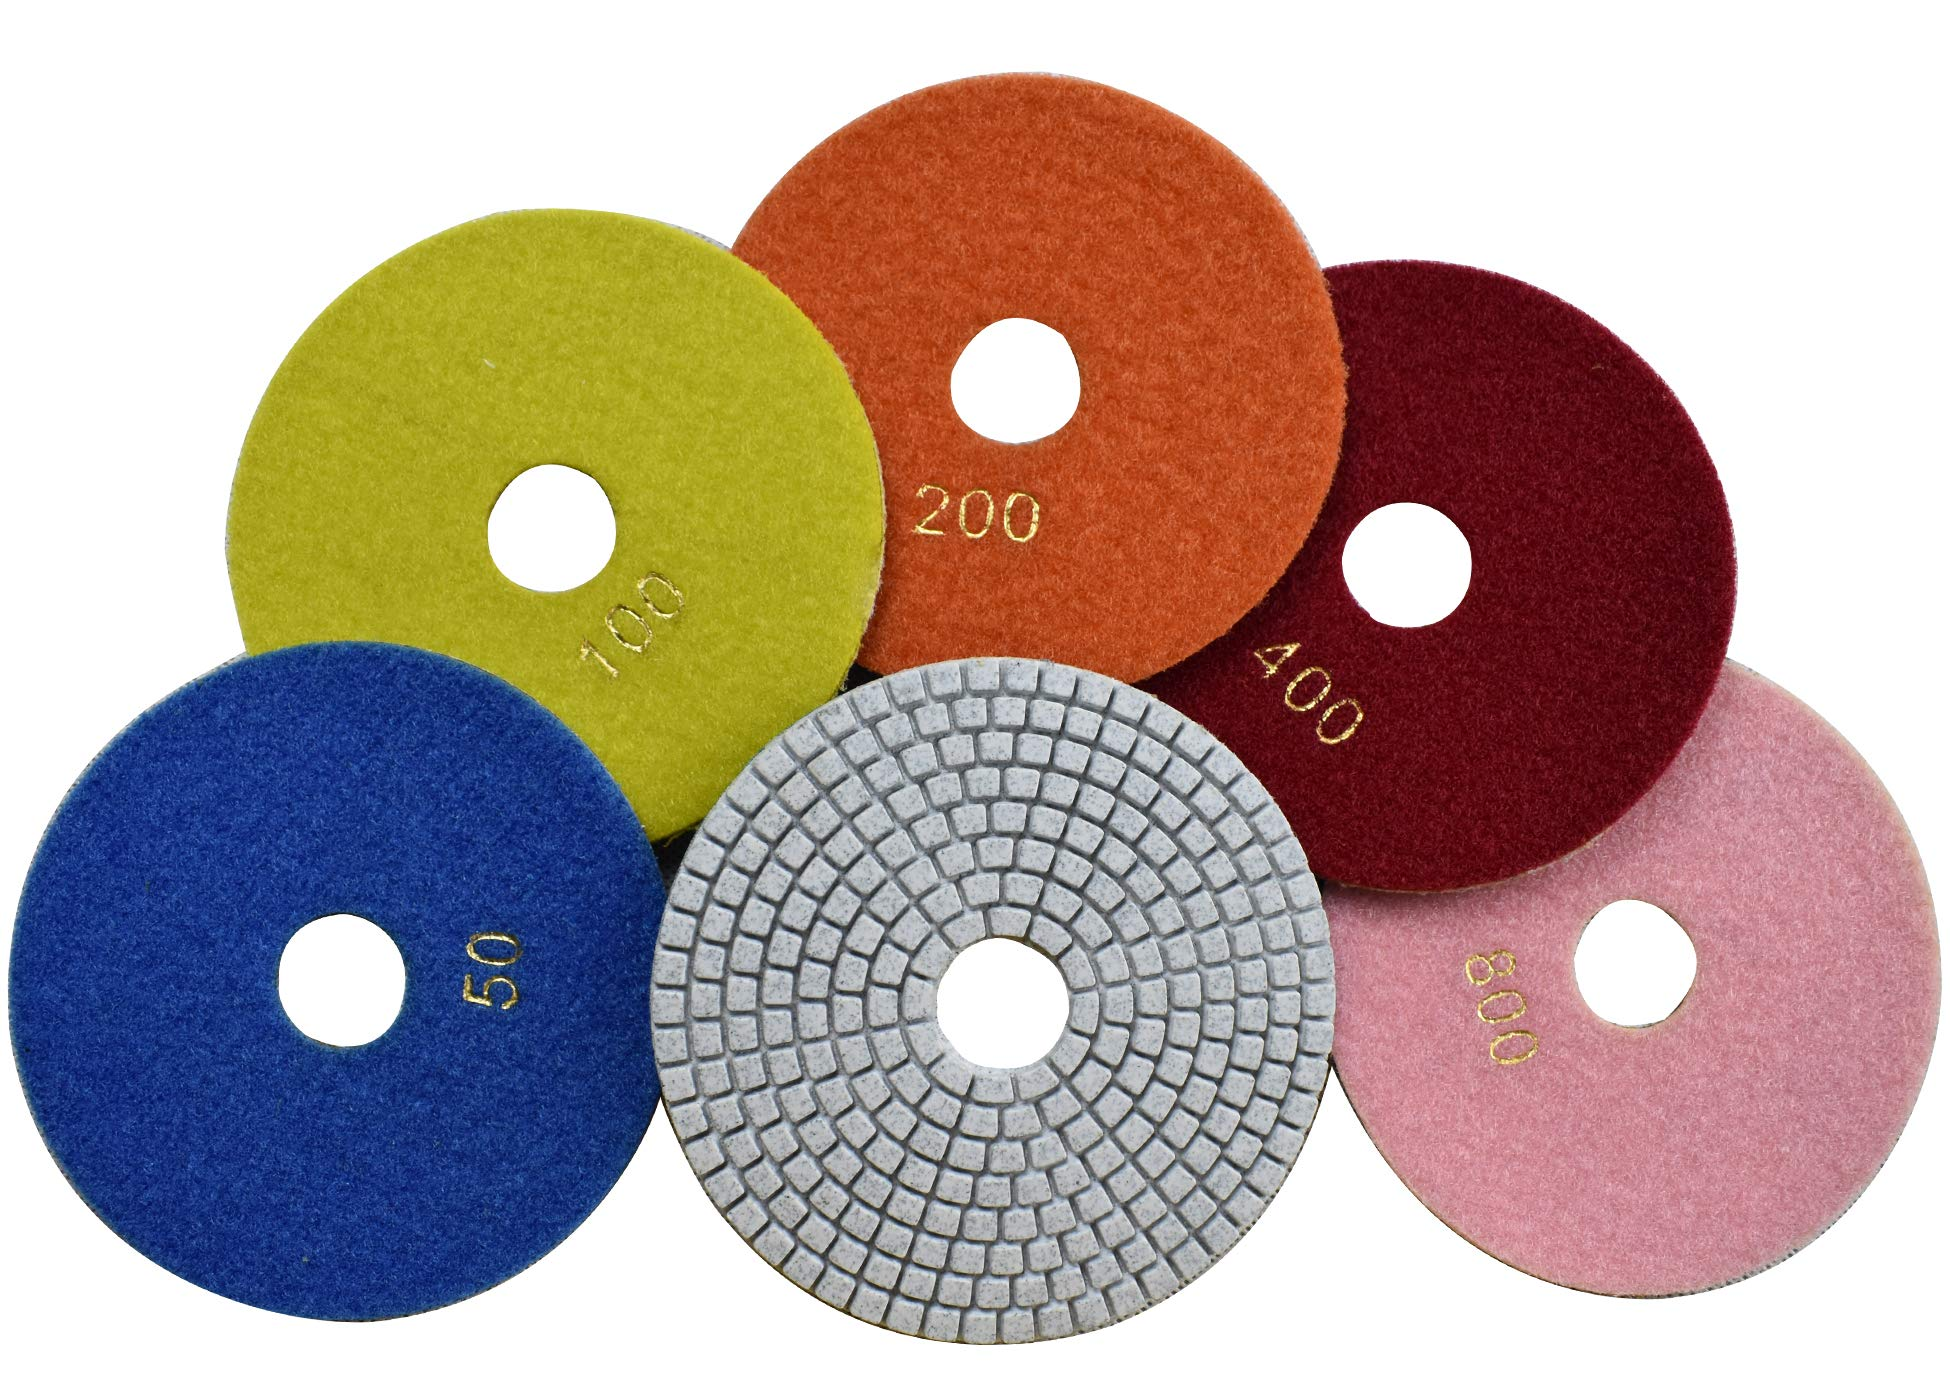 Konfor Wet Diamond 5 inch Polishing Pads 5 Packs Best Value for Granite Marble Travertine Concrete Quartz Terrazzo Renew